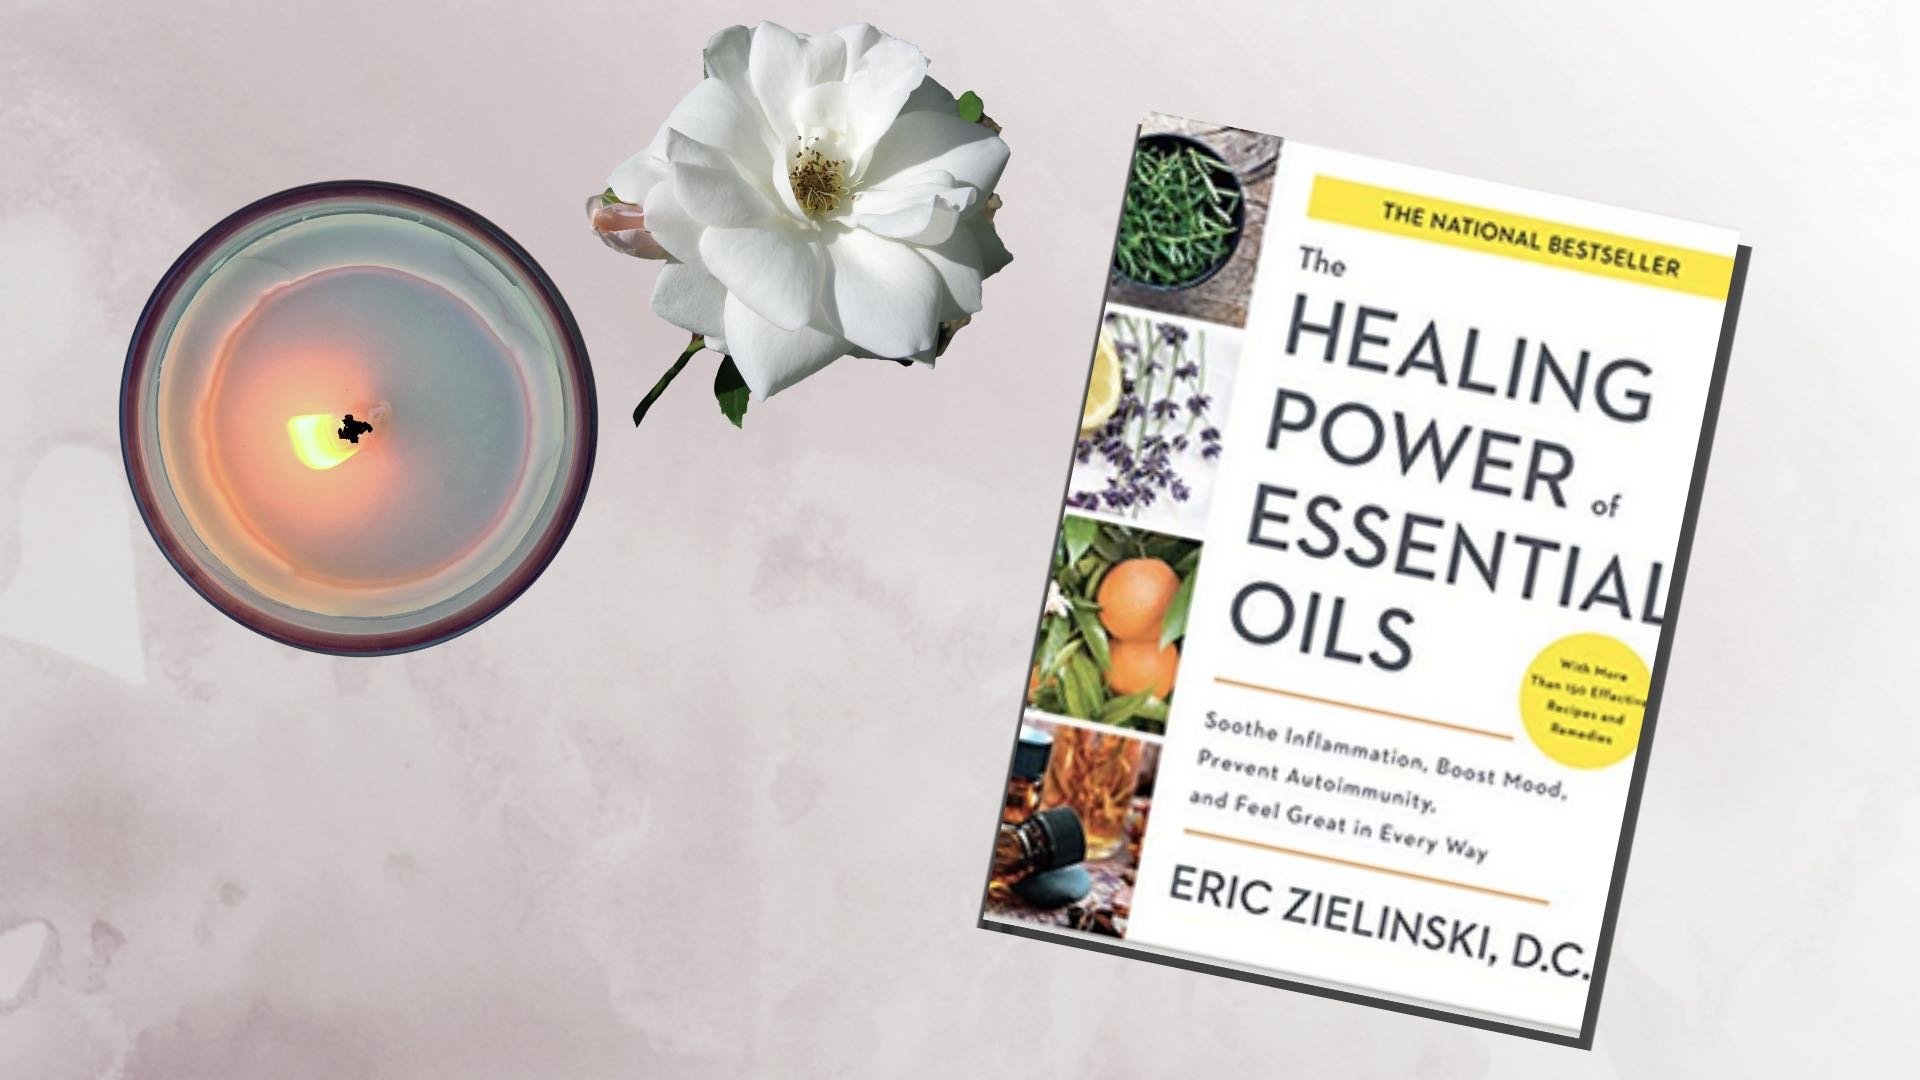 2019.20.findthisbook.BookReview.HealingPowerEssentialOils